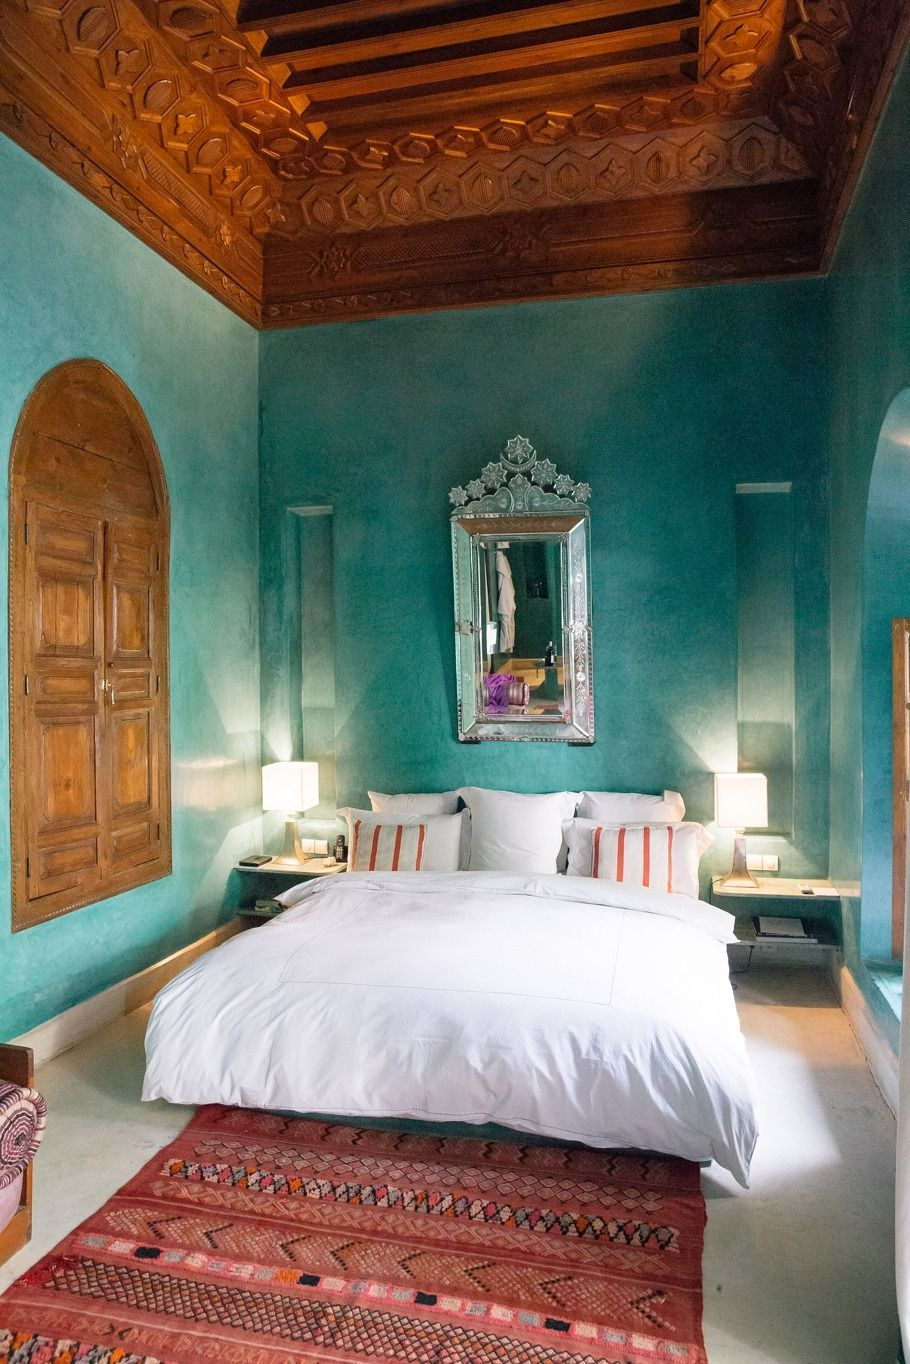 Mirror Ceiling Bedroom Stunning Traditional Moroccan Riad Bedroom With Dramatic Carved